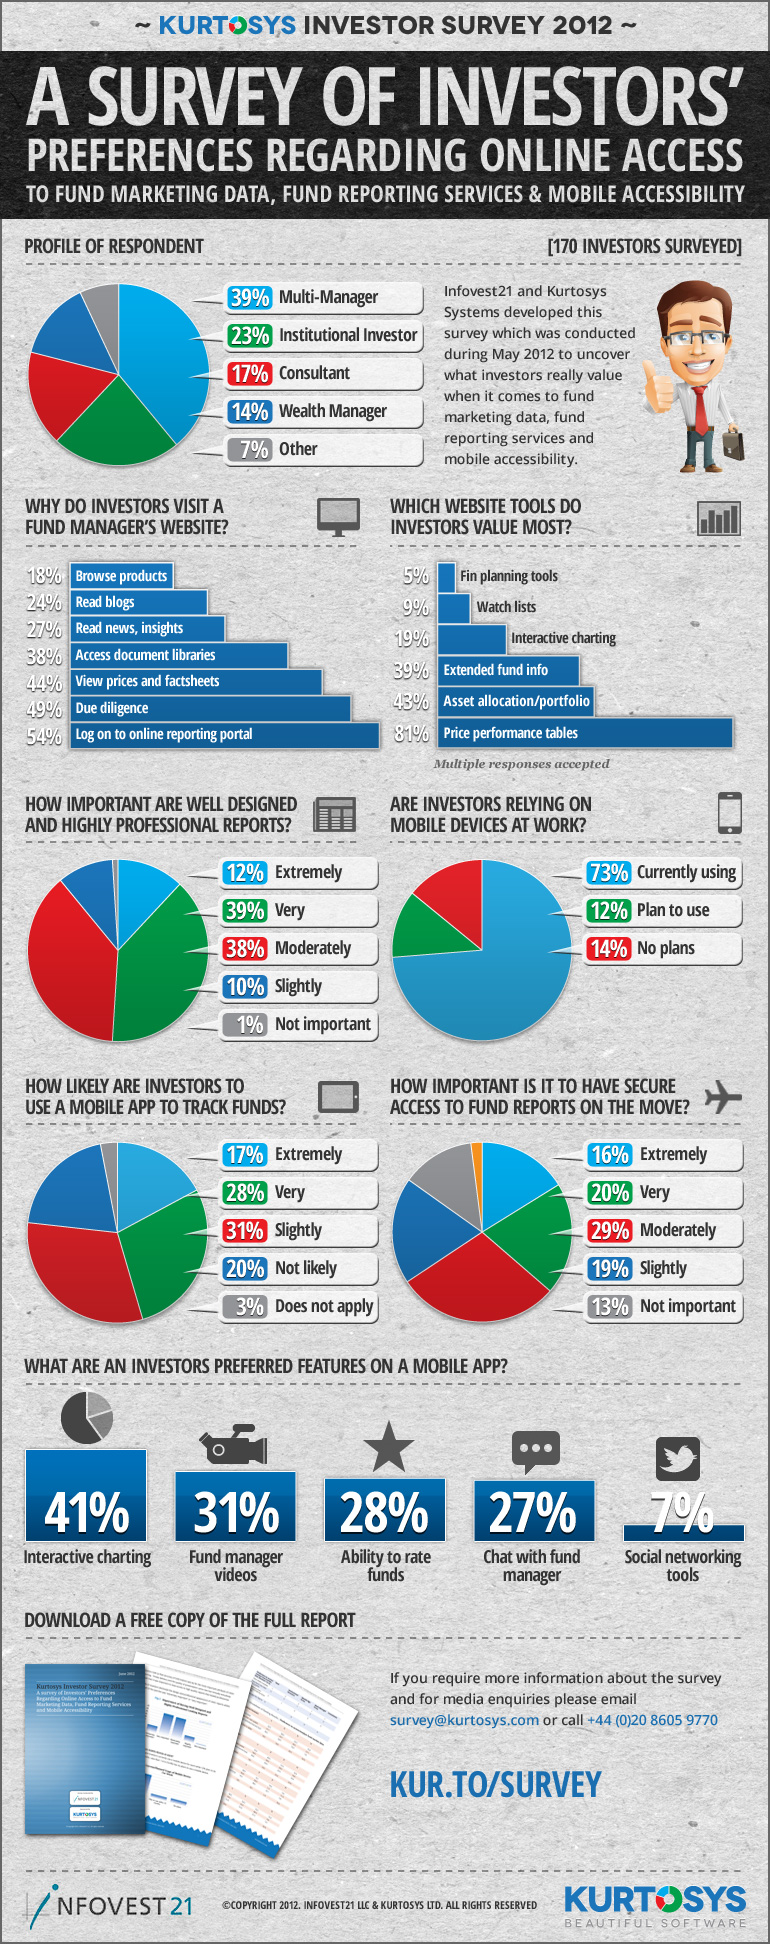 A Survey of Investors Preferences: Online, Reporting & Mobile [INFOGRAPHIC] 1